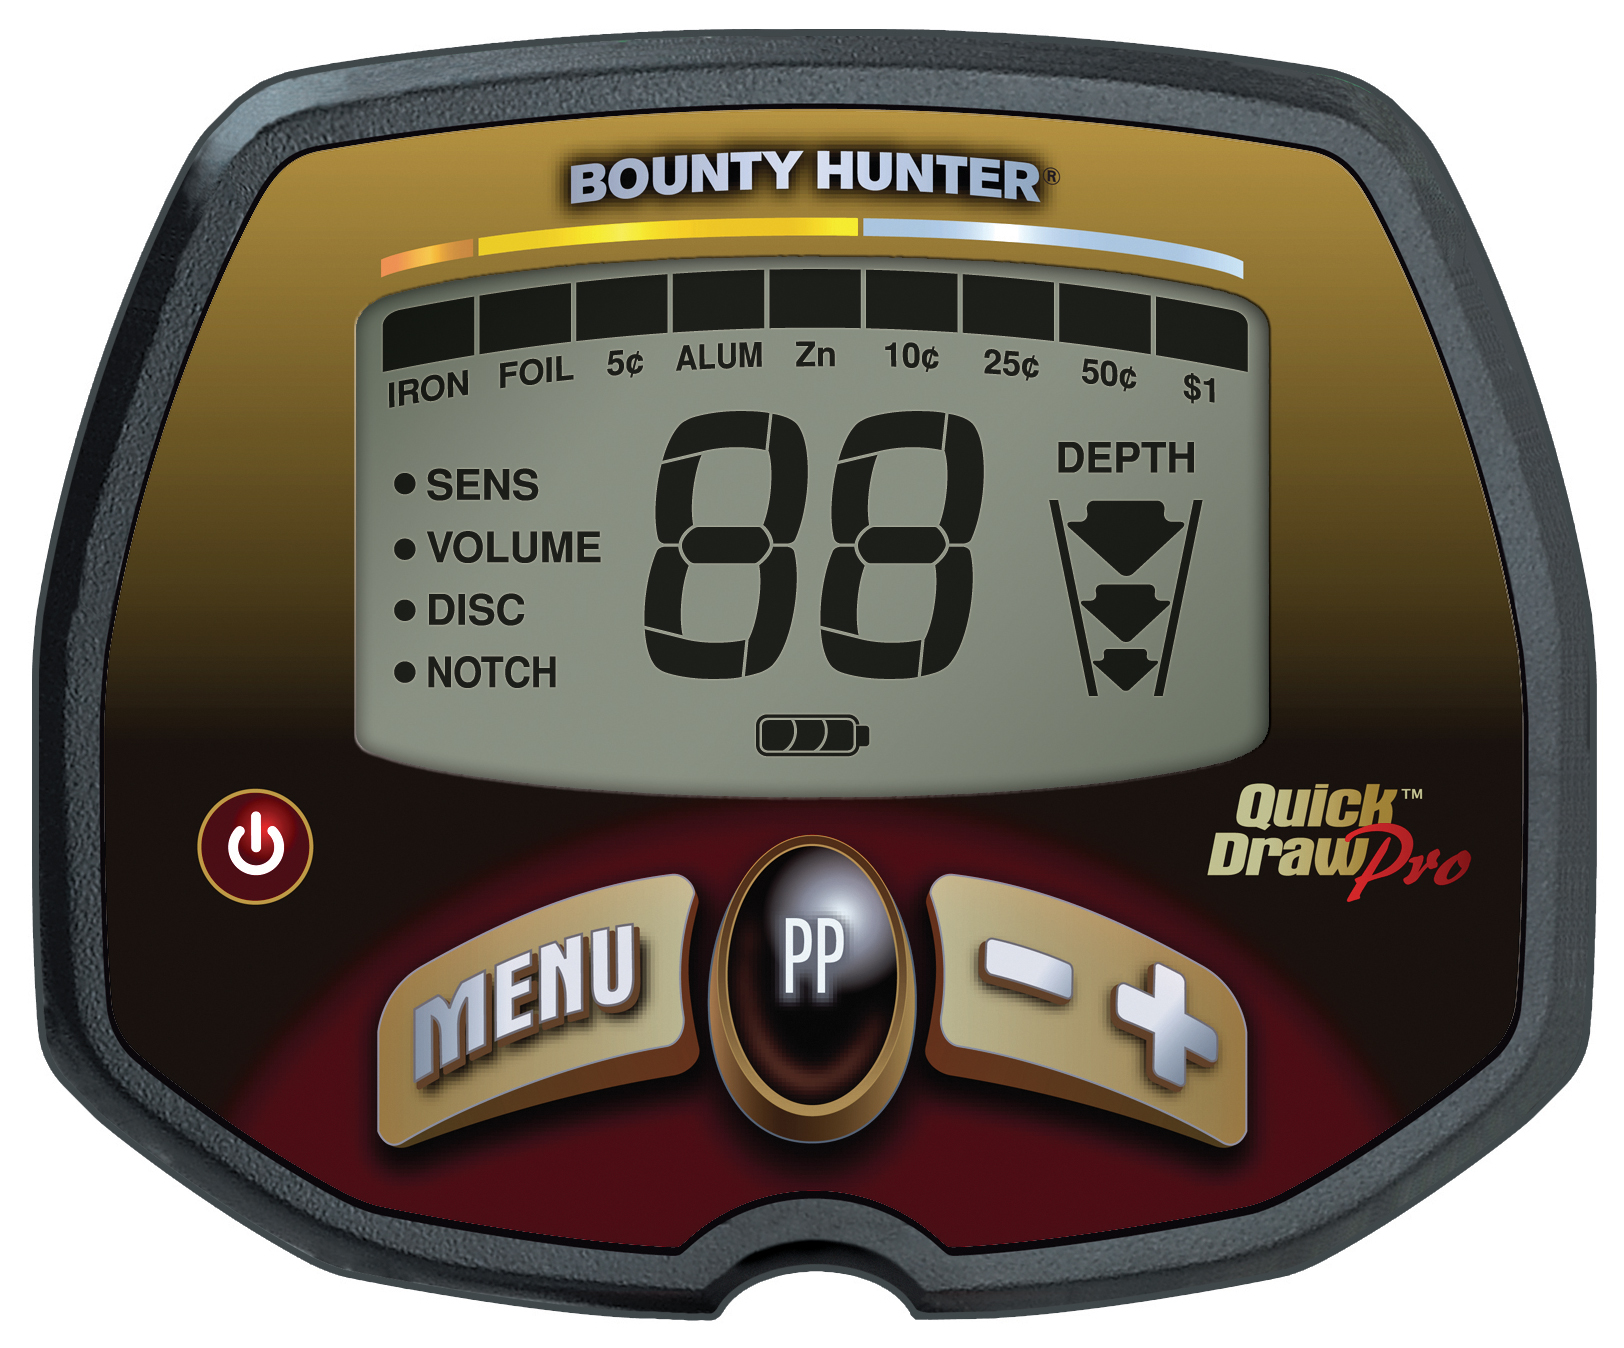 bounty hunter quick draw 2 manual